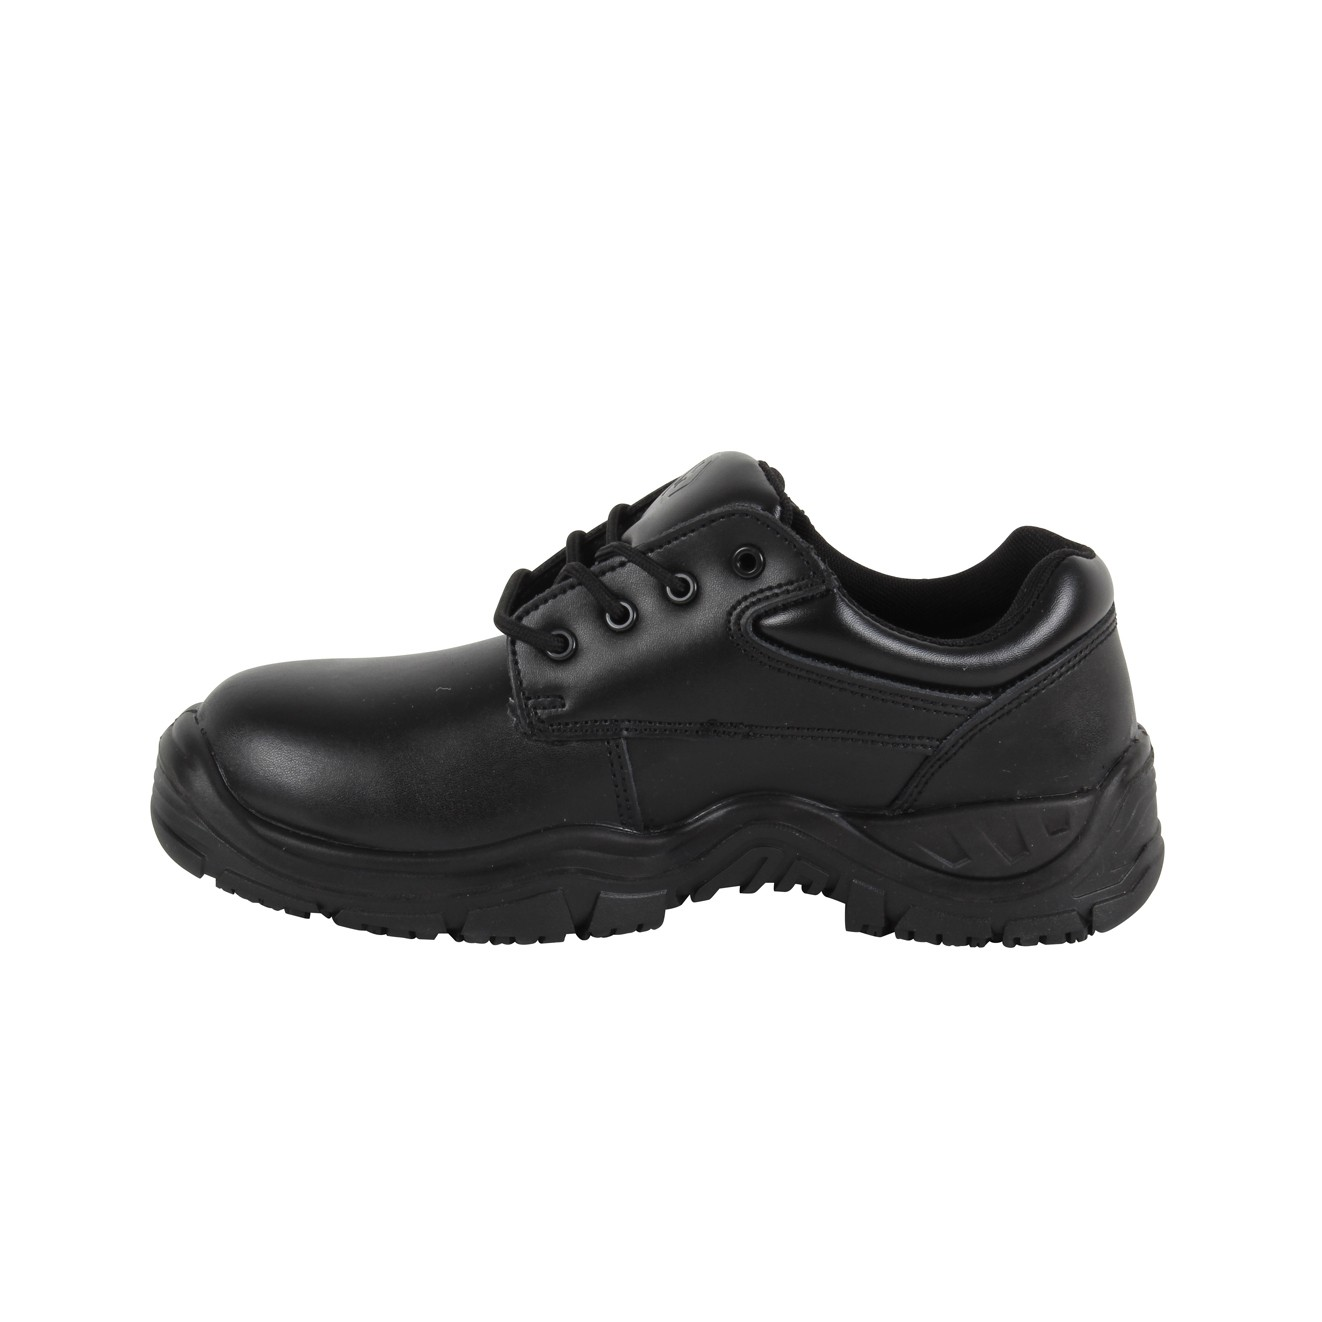 Tactical Officer Shoe